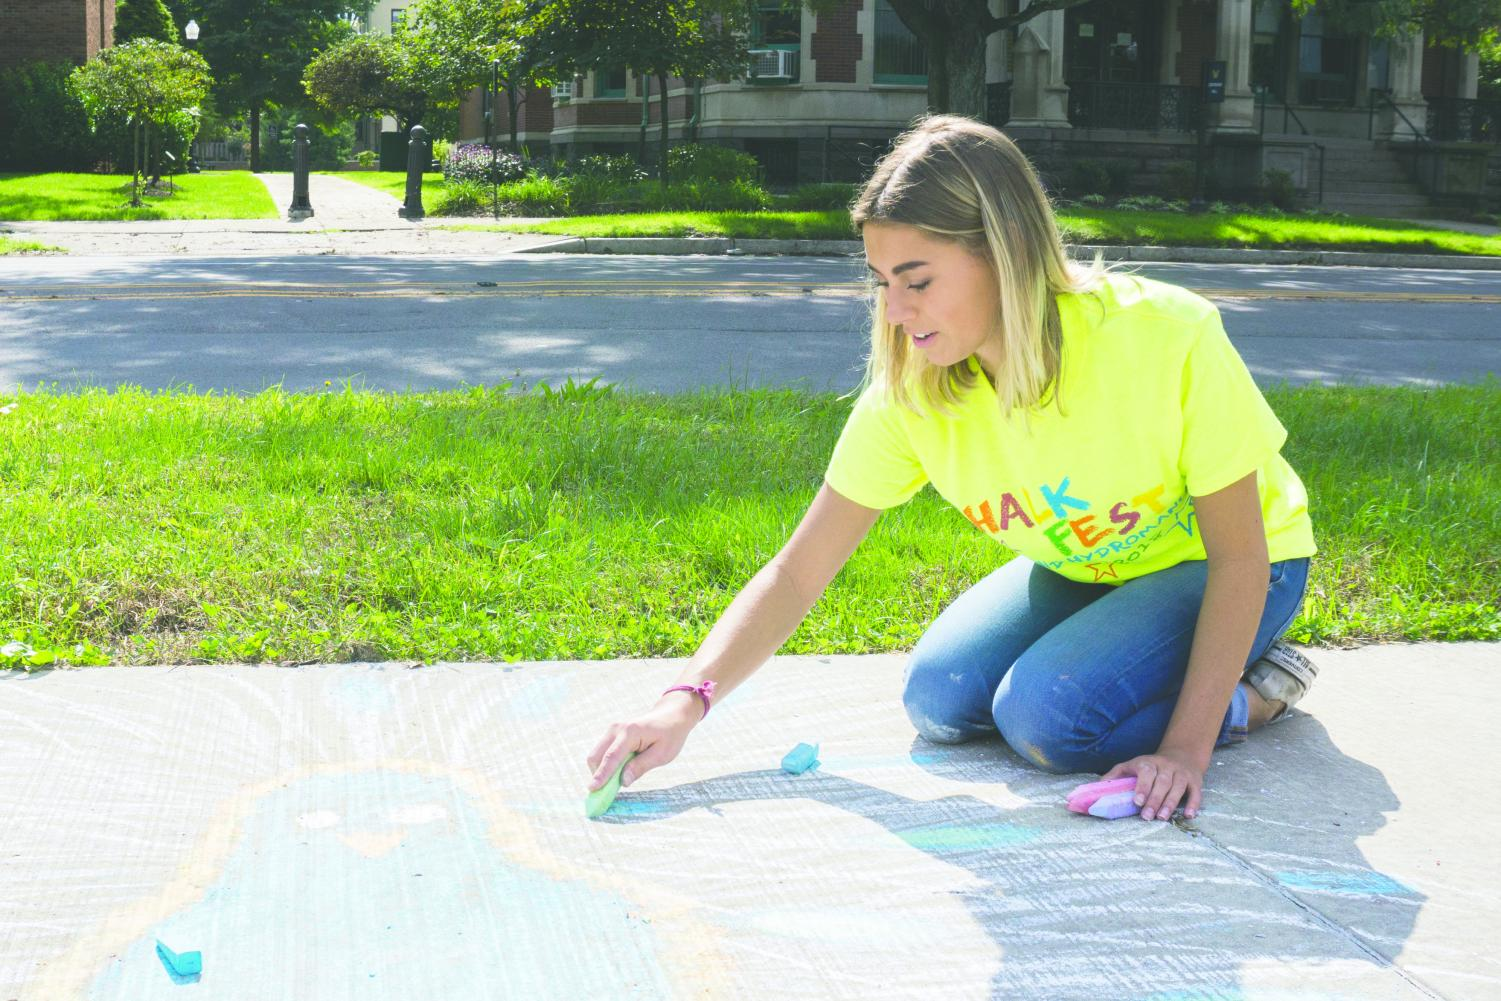 Taylor Hubiak, a sophomore business management major, contributed to the chalk drawing.